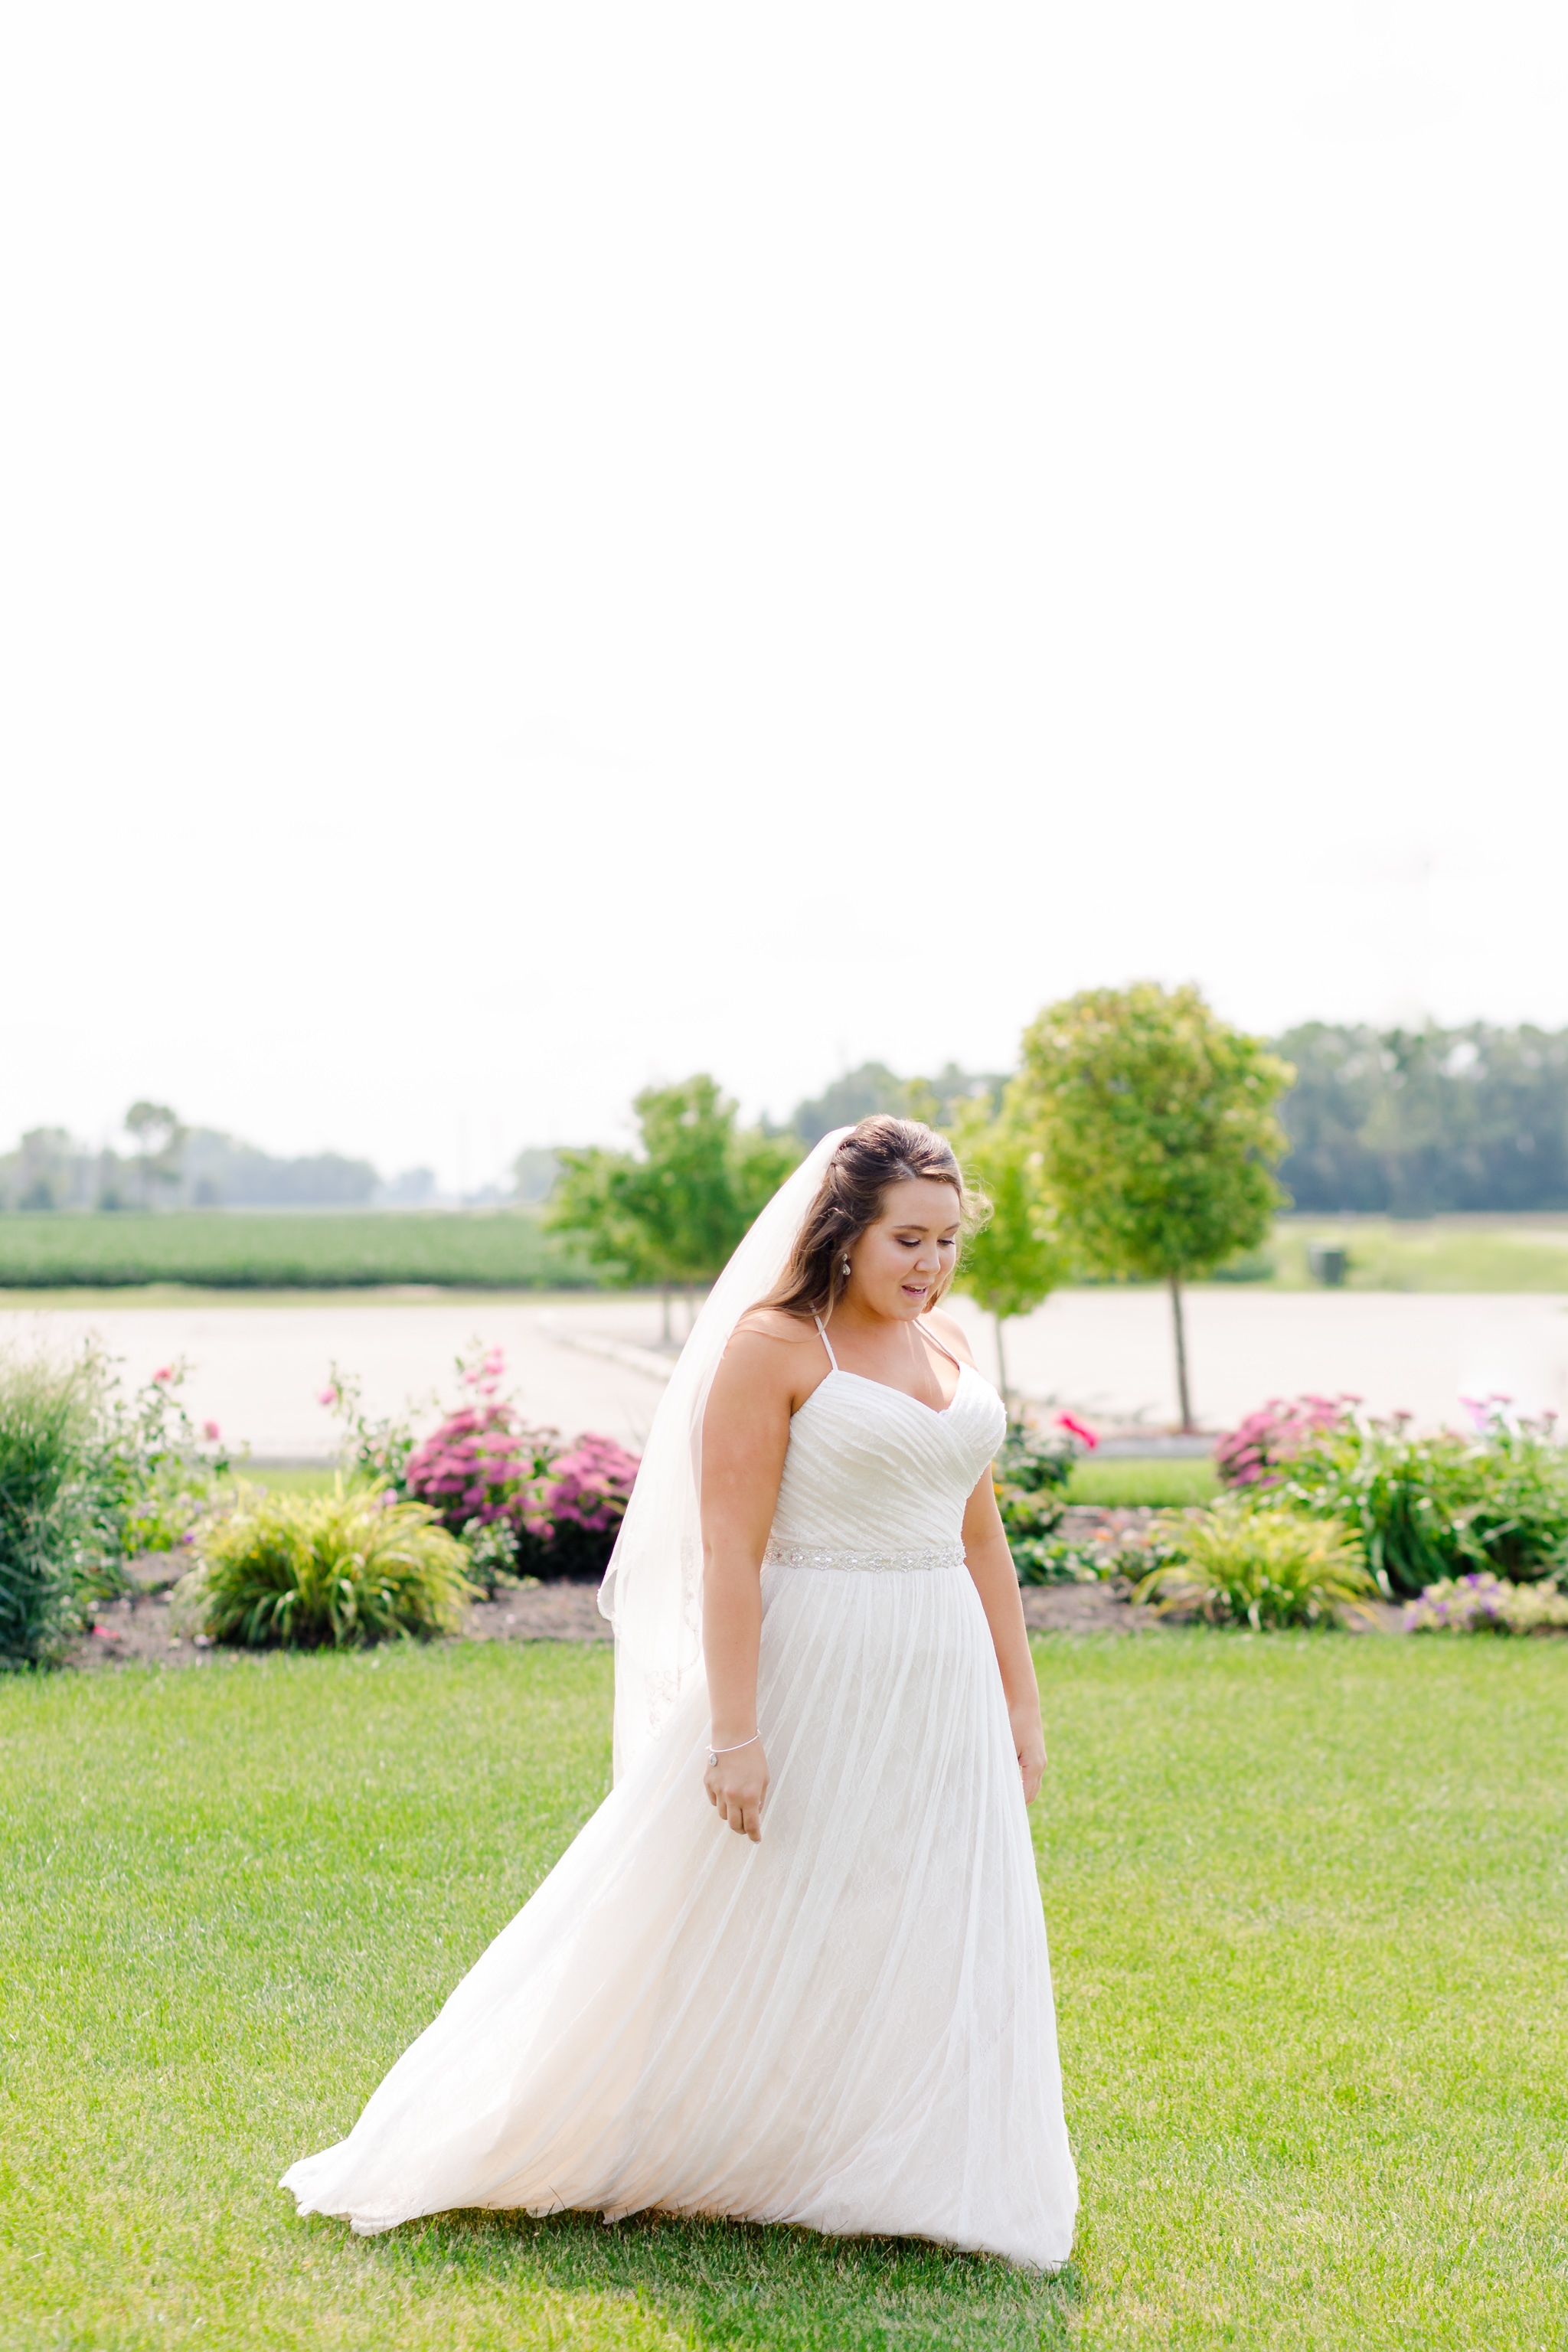 Moorhead Wedding Photography by Chelsea Joy Photography